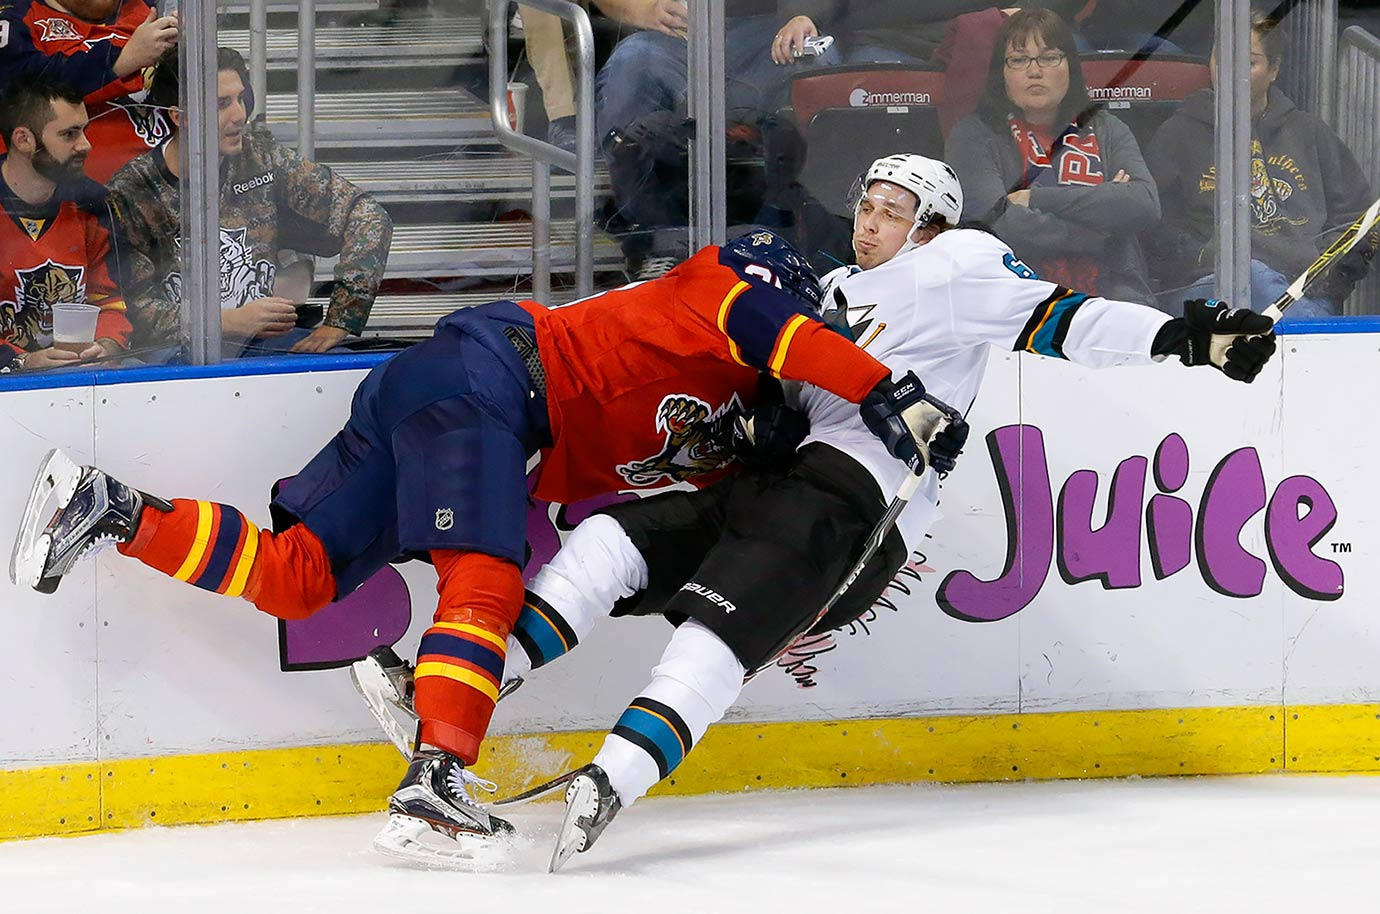 Florida Panthers left wing Garrett Wilson collides with San Jose Sharks defenseman Justin Braun during the second period of their game in Sunrise, Fla.